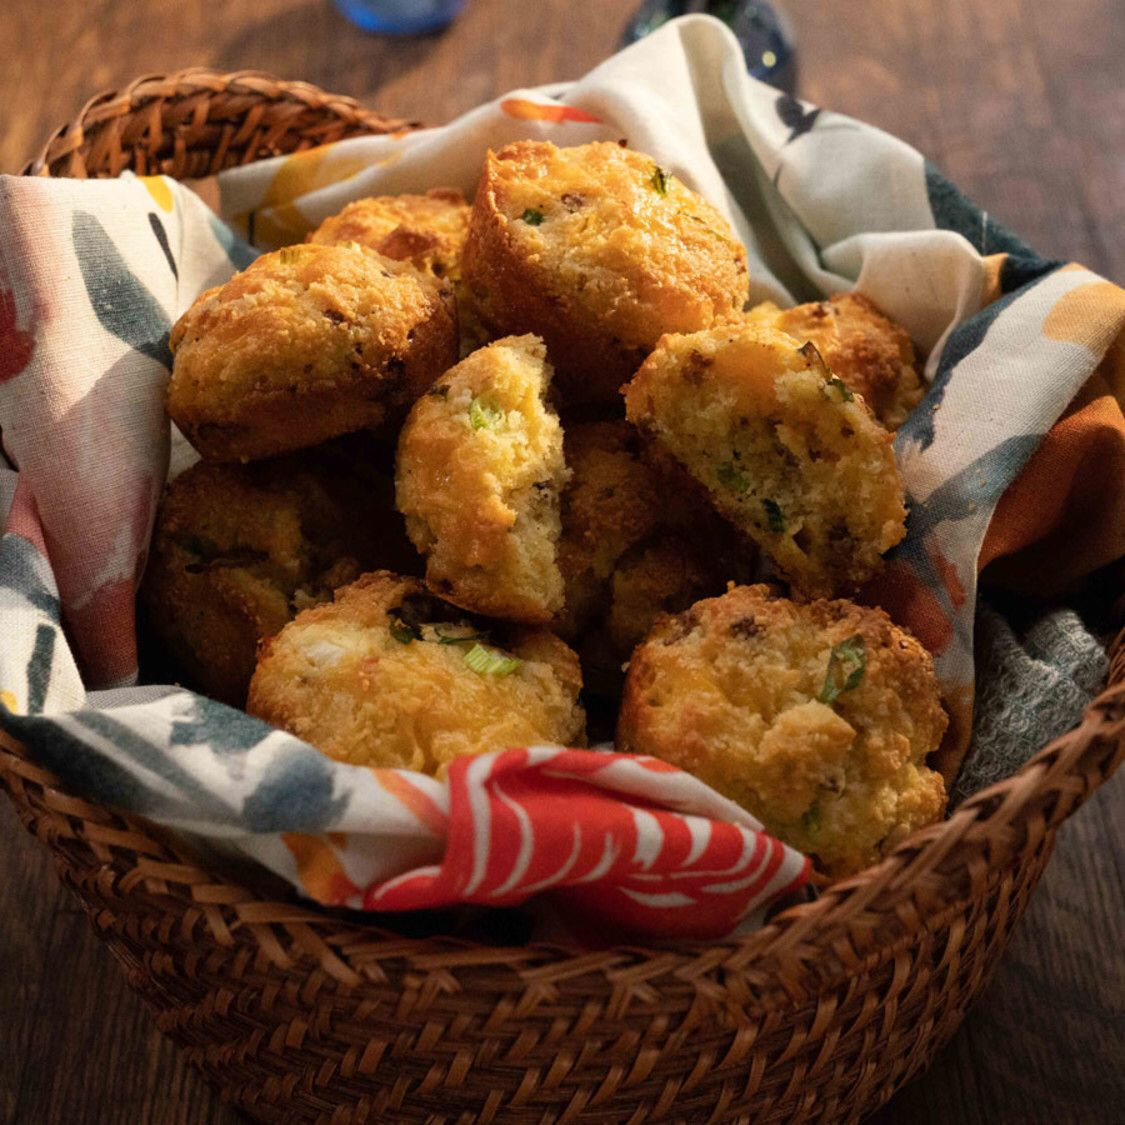 Savory Morning Muffins Recipe In 2020 Food Network Recipes Savory Breakfast Muffins Breakfast Brunch Recipes